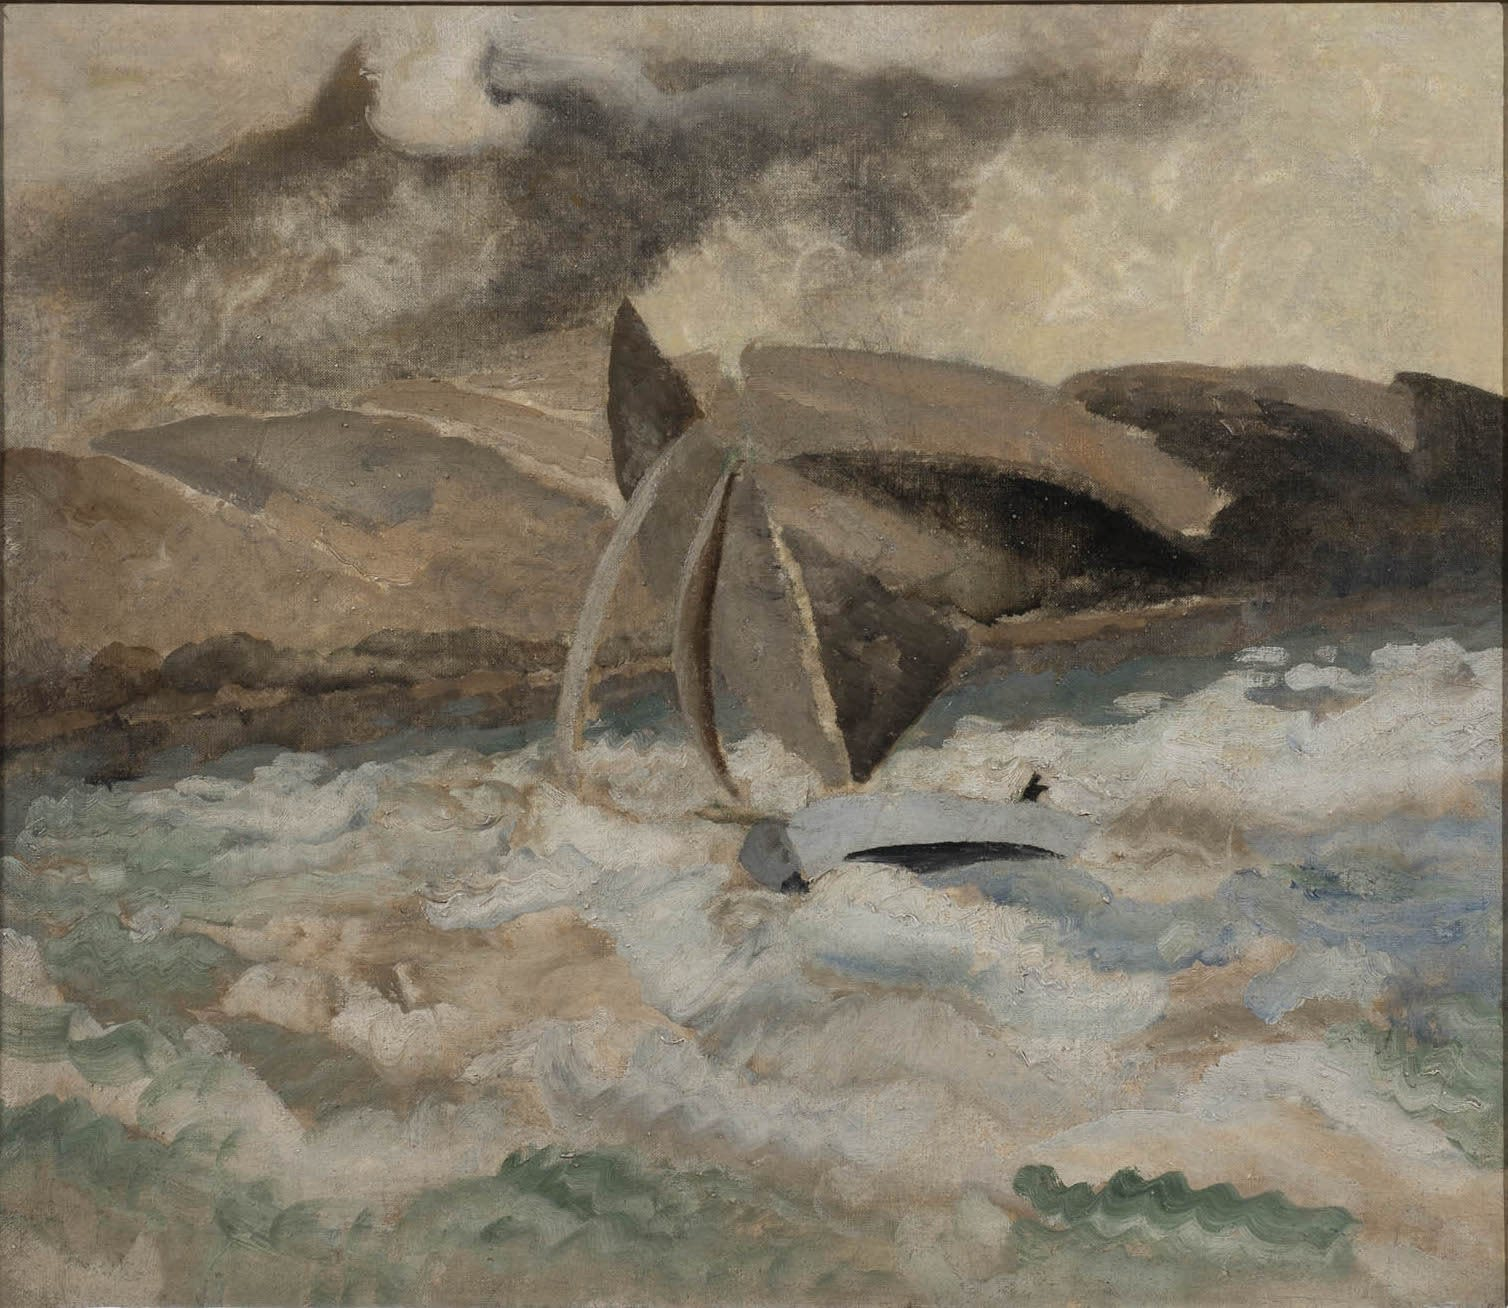 Winifred NICHOLSON (1893-1981) St. Feock (St. Ives Harbour verso), c.1928 Oil on canvas 23 x 28 ¾ inches / 58 ½ x 73 cm